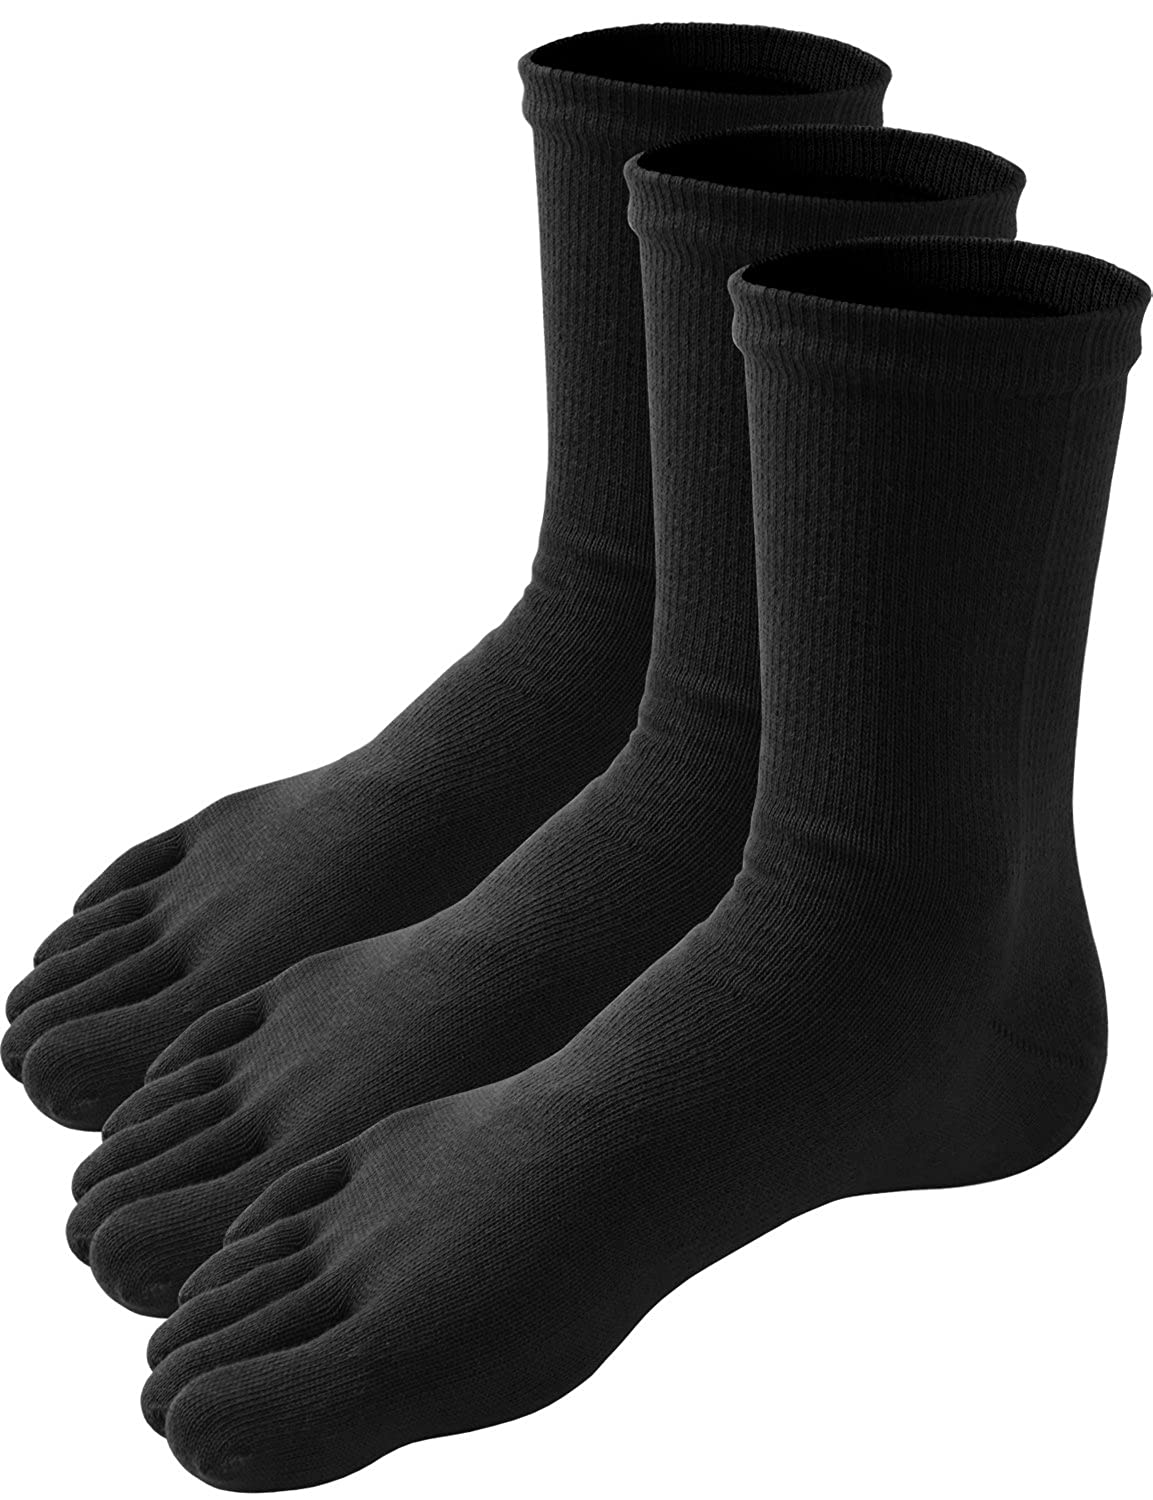 HASLRA Men's Excellent Stretch Comfort Crew Toe Socks 2-6 Pairs